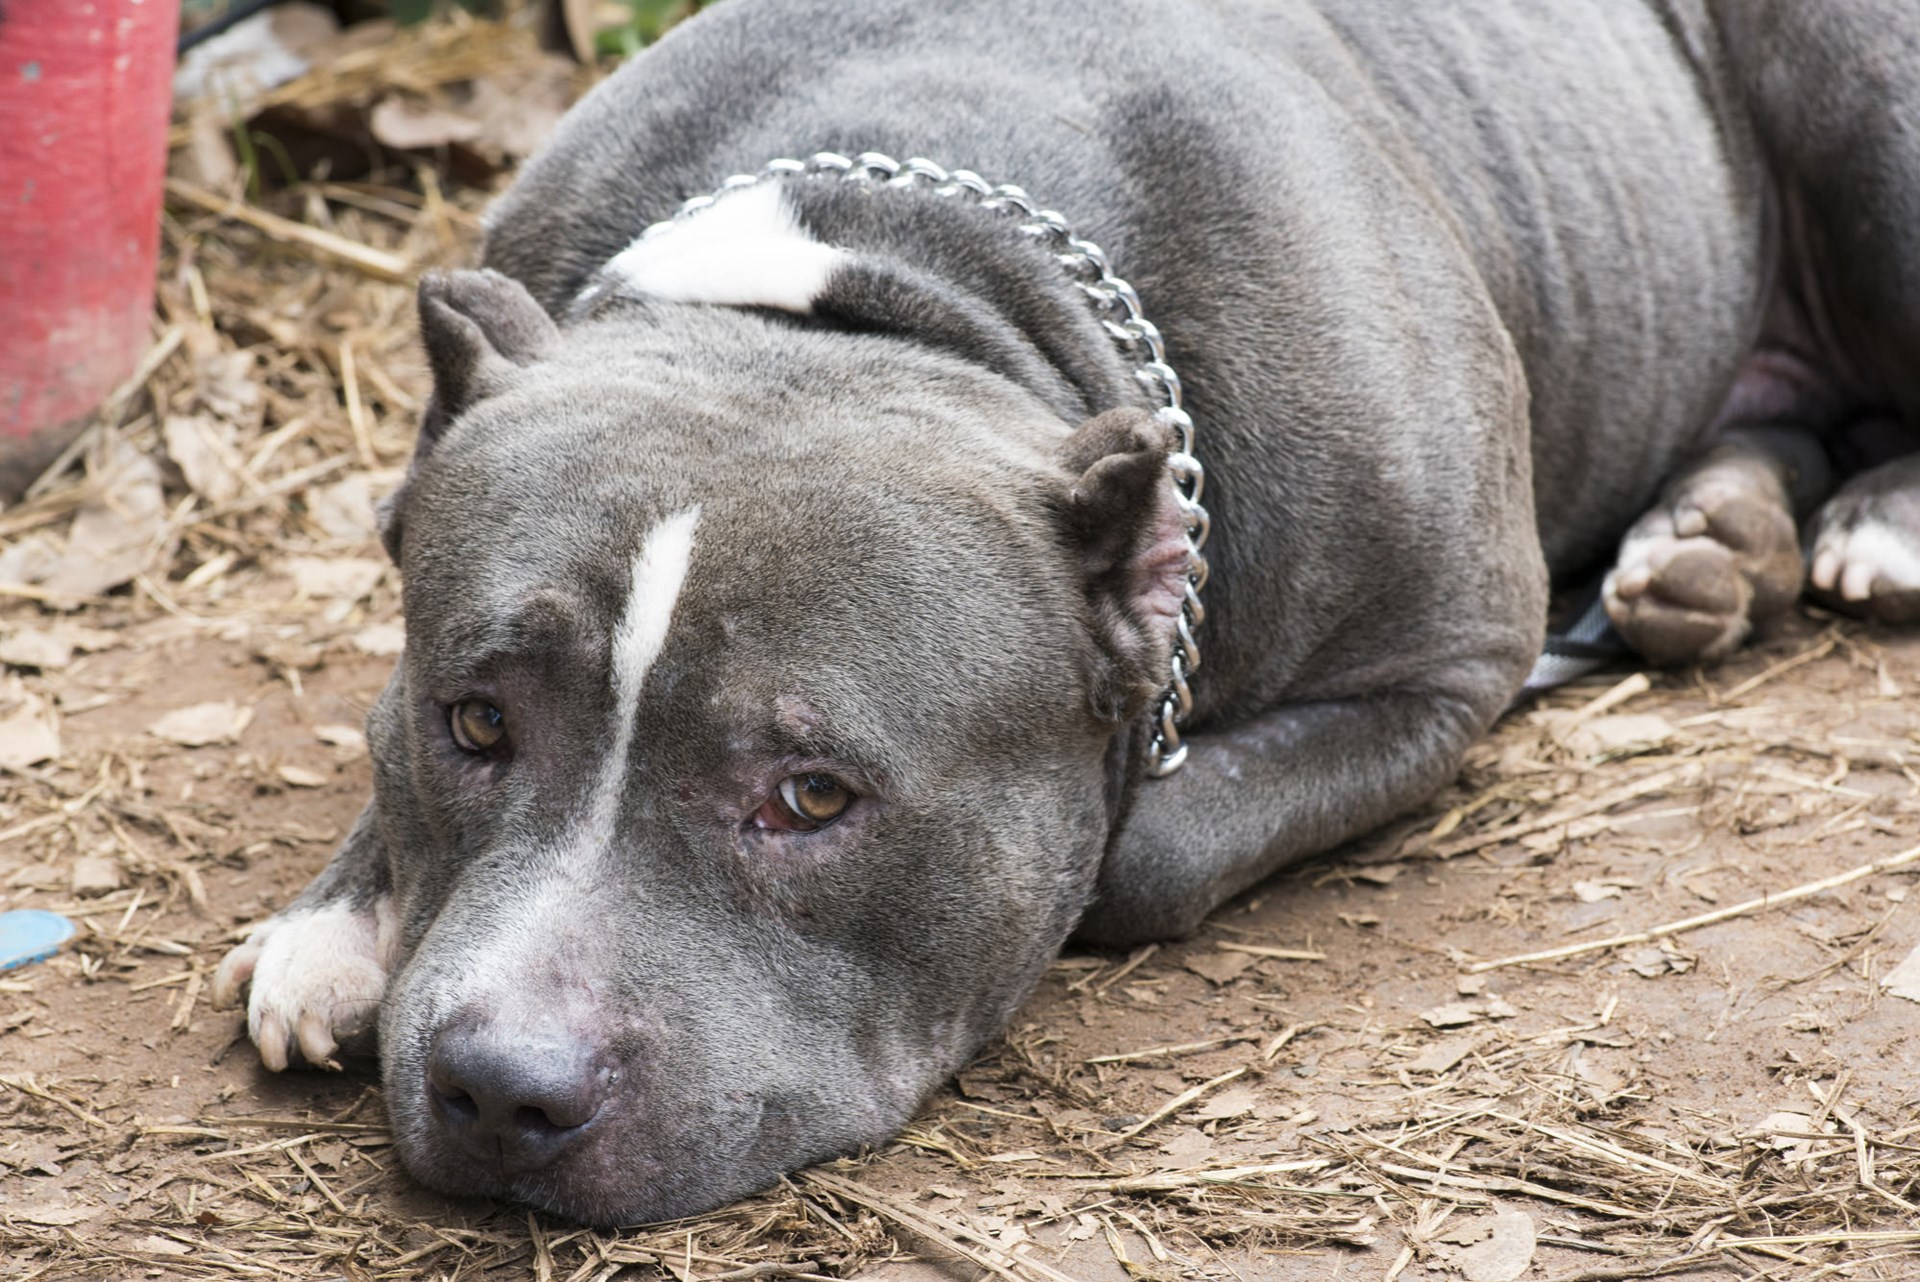 Pit Bulls Are Neither Monsters Nor Teddy Bears - Foundation